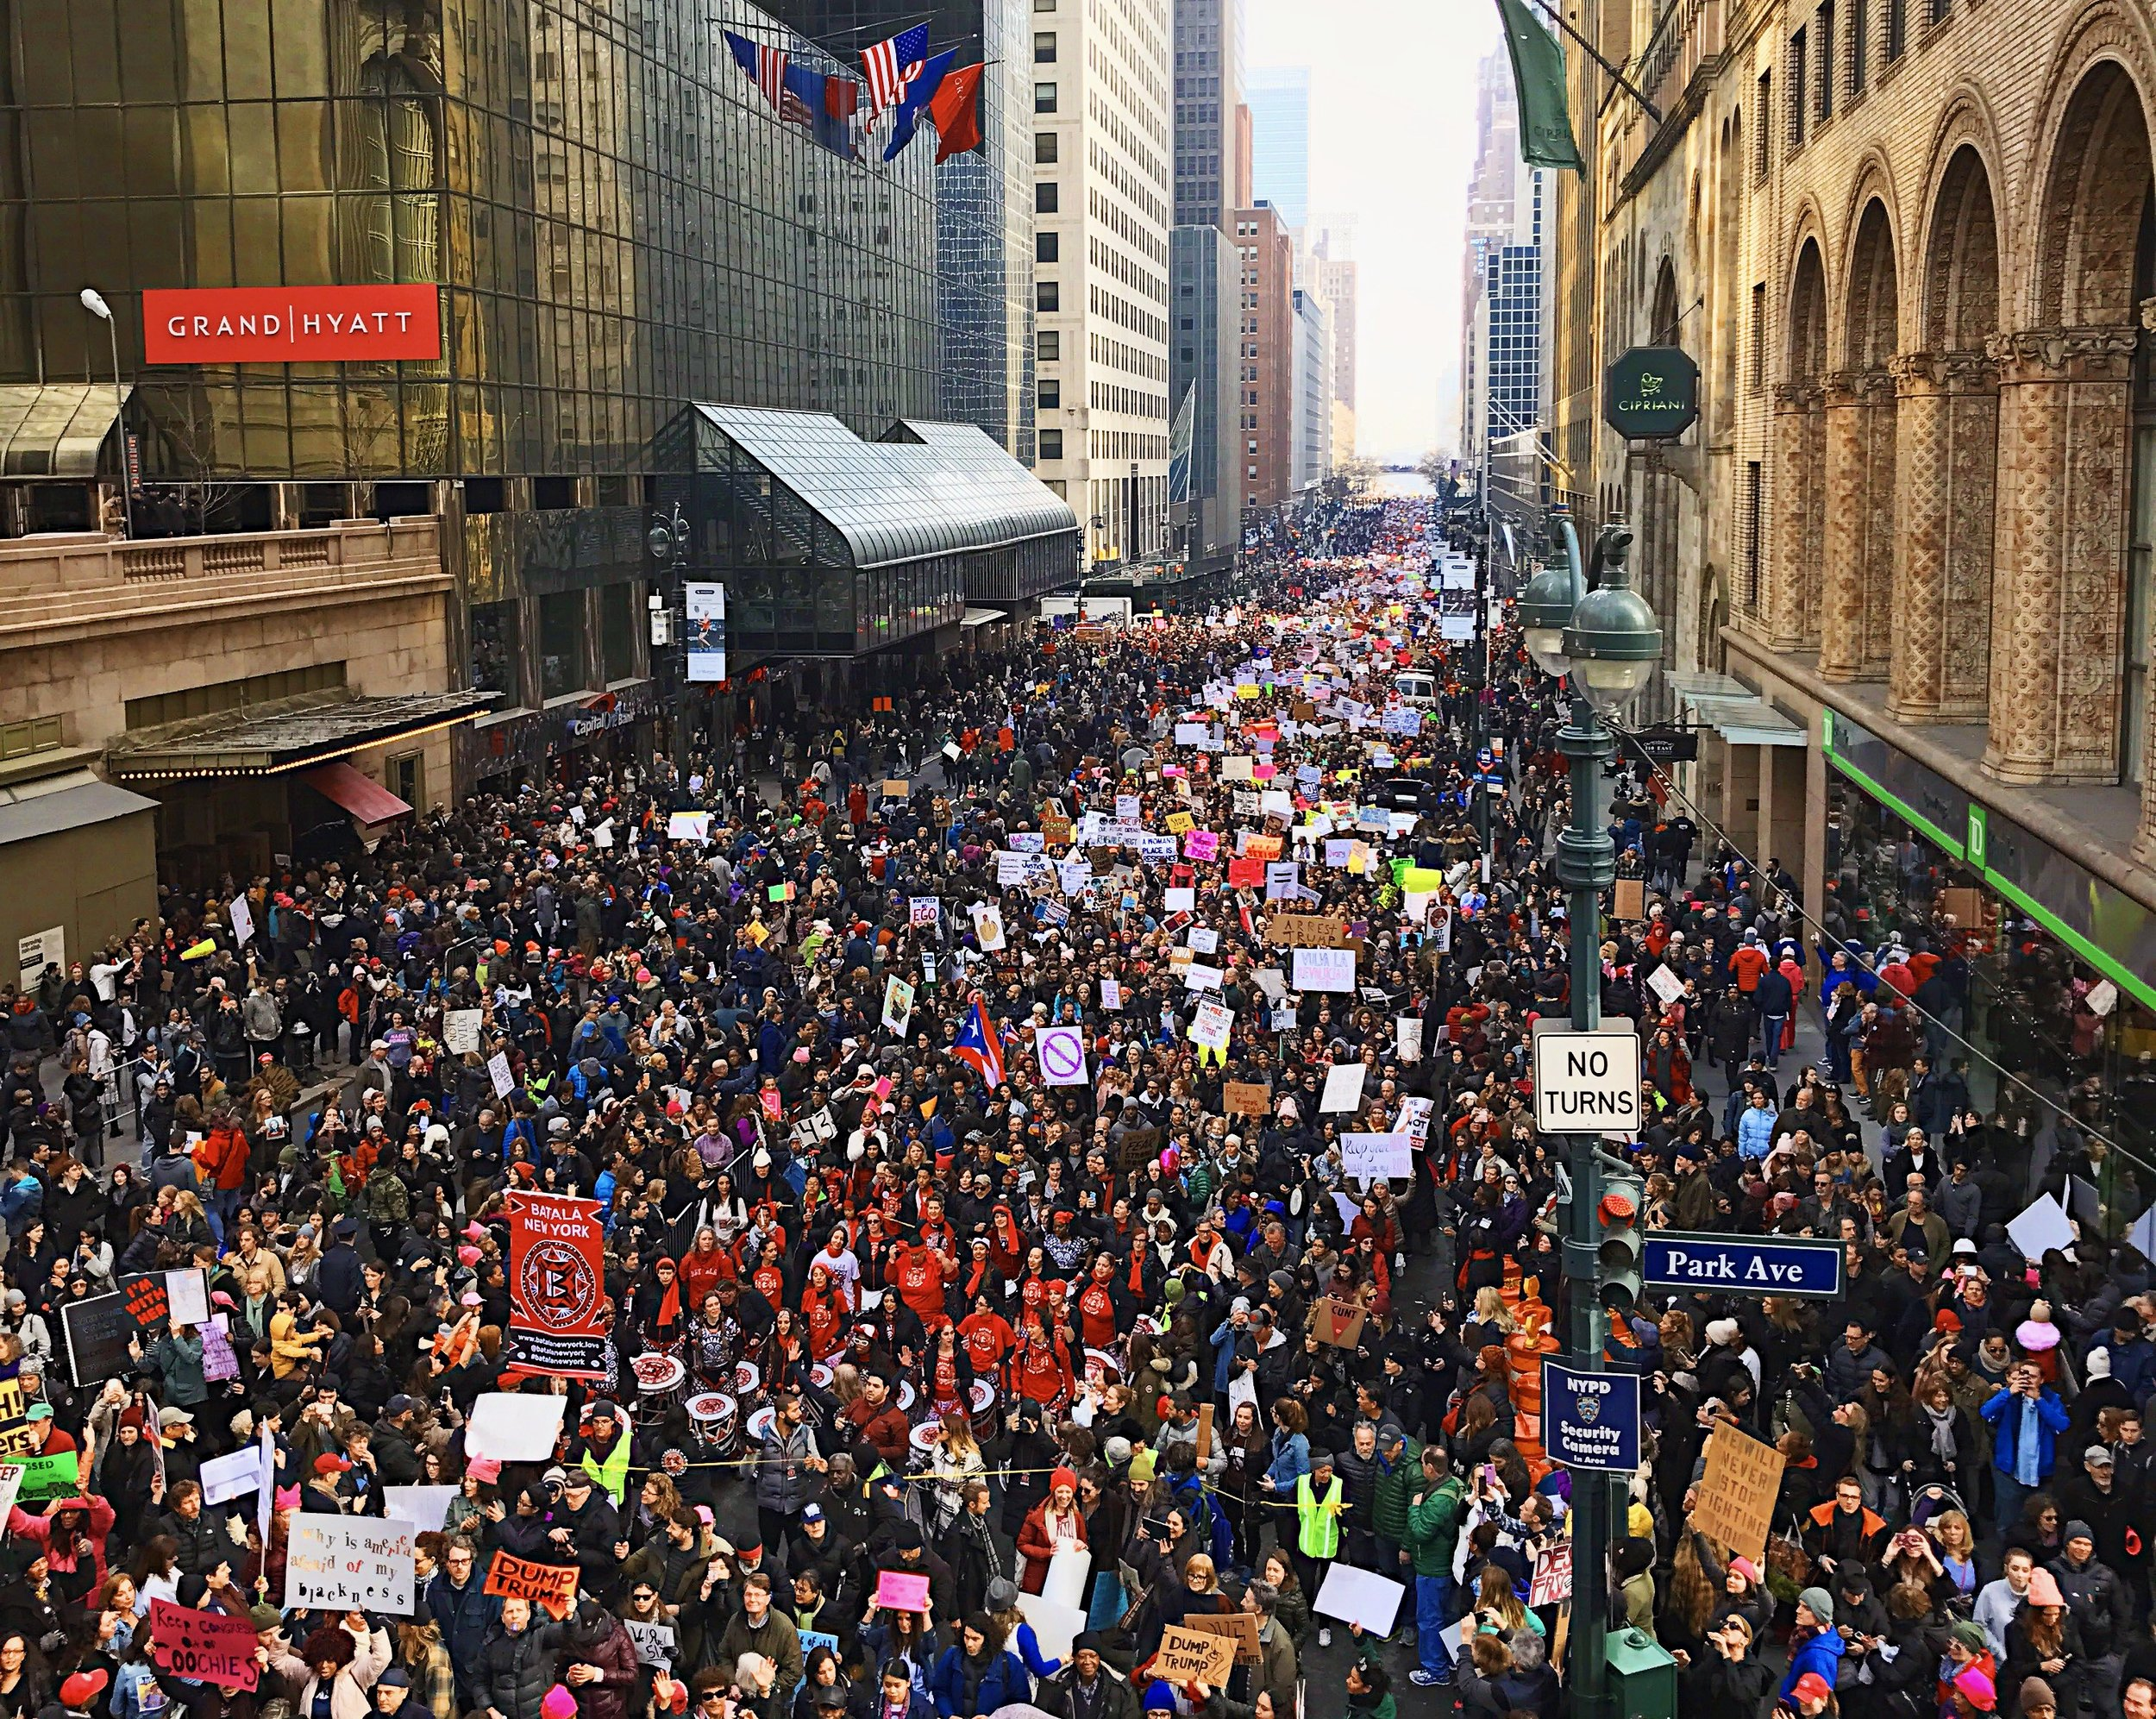 Jan. 21, 2017: The Women's March on NYC